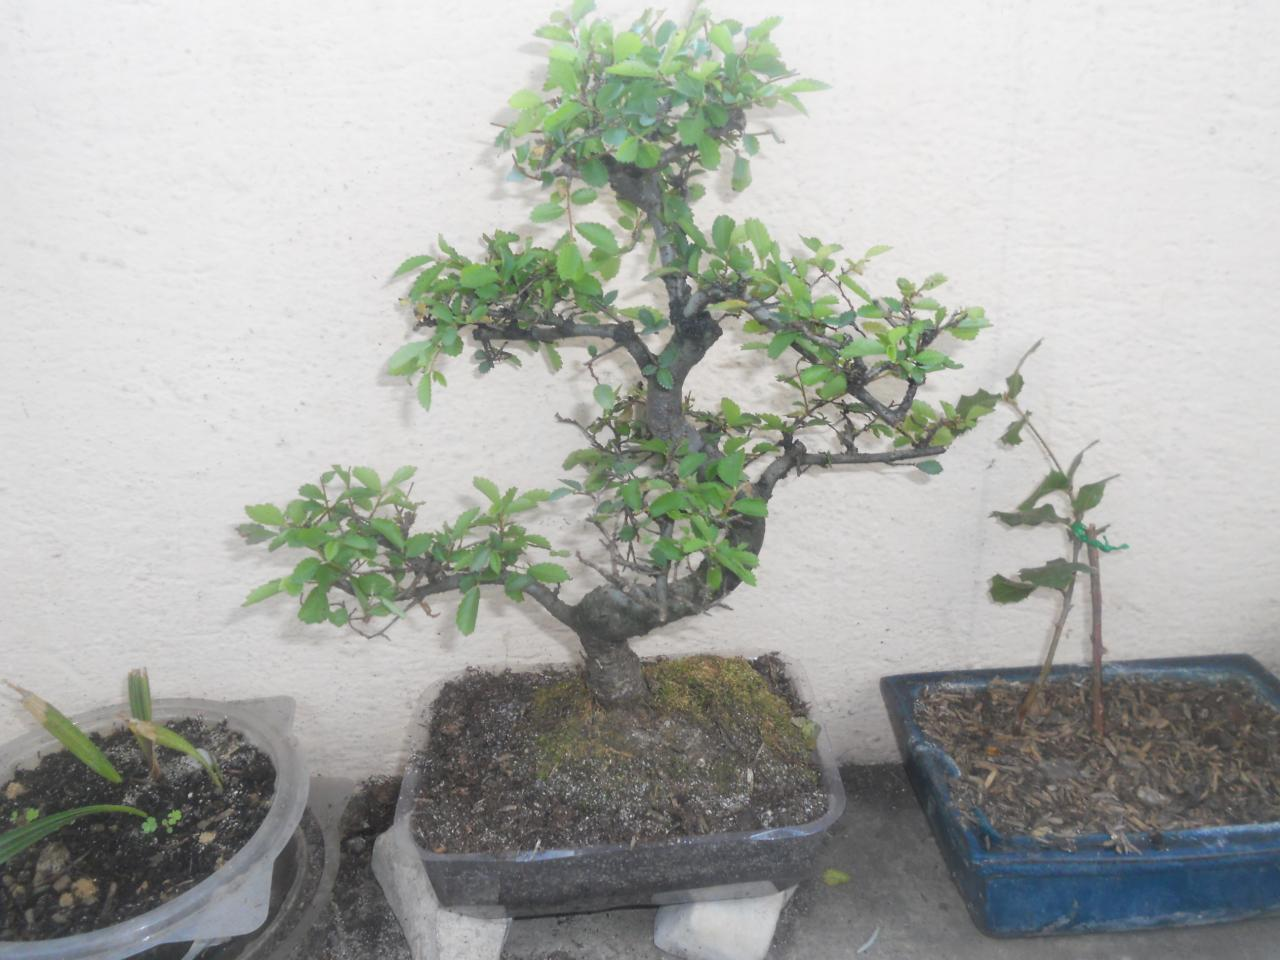 Bonsa cr ation l 39 album photos feuillus - Orme de chine bonsai ...